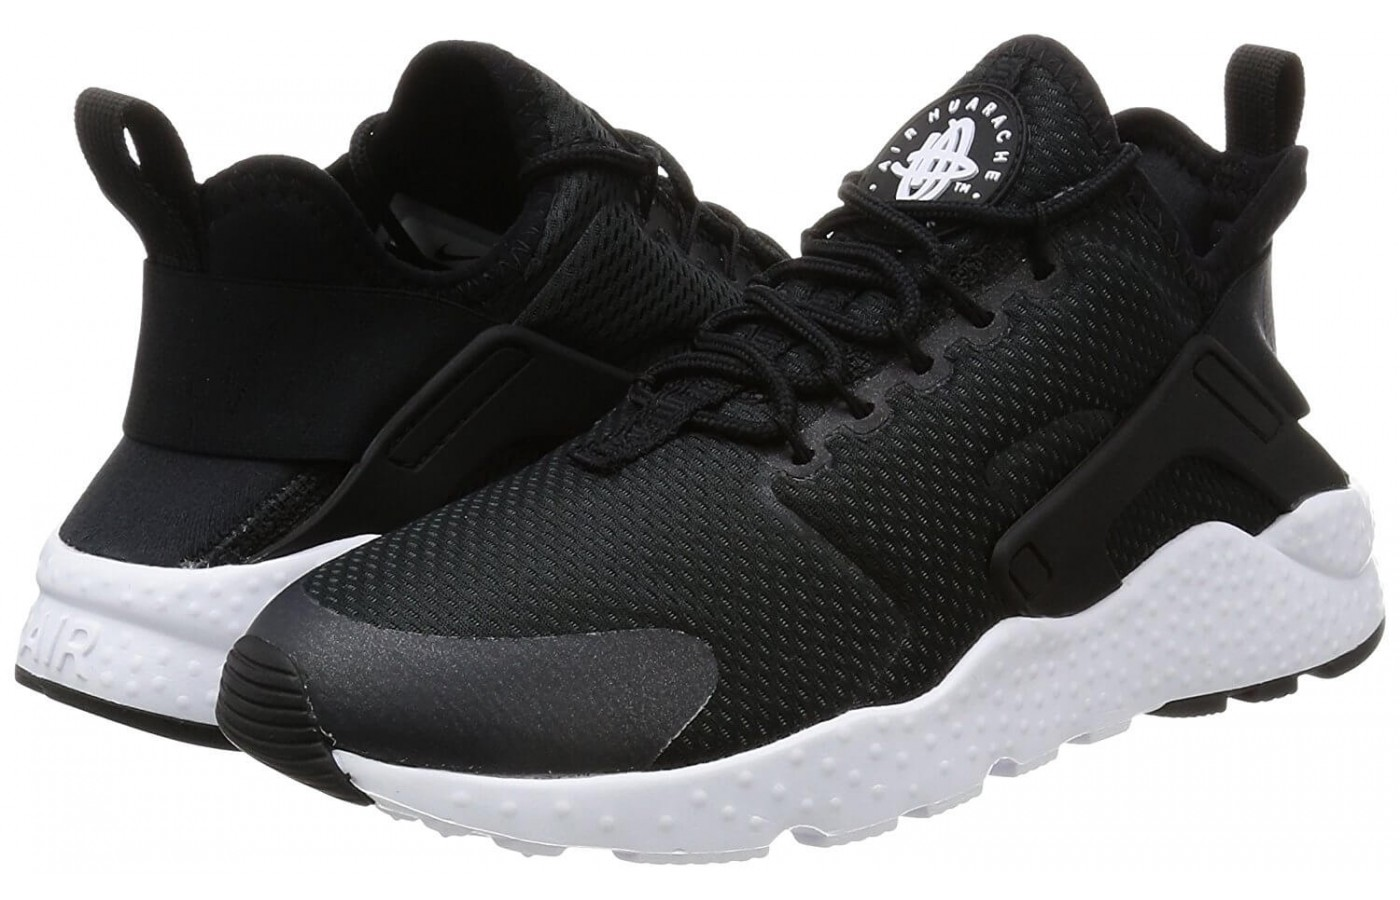 66bd373c3ec2 ... The Nike Air Huarache Ultra has slight variations between the men s and  women s versions.